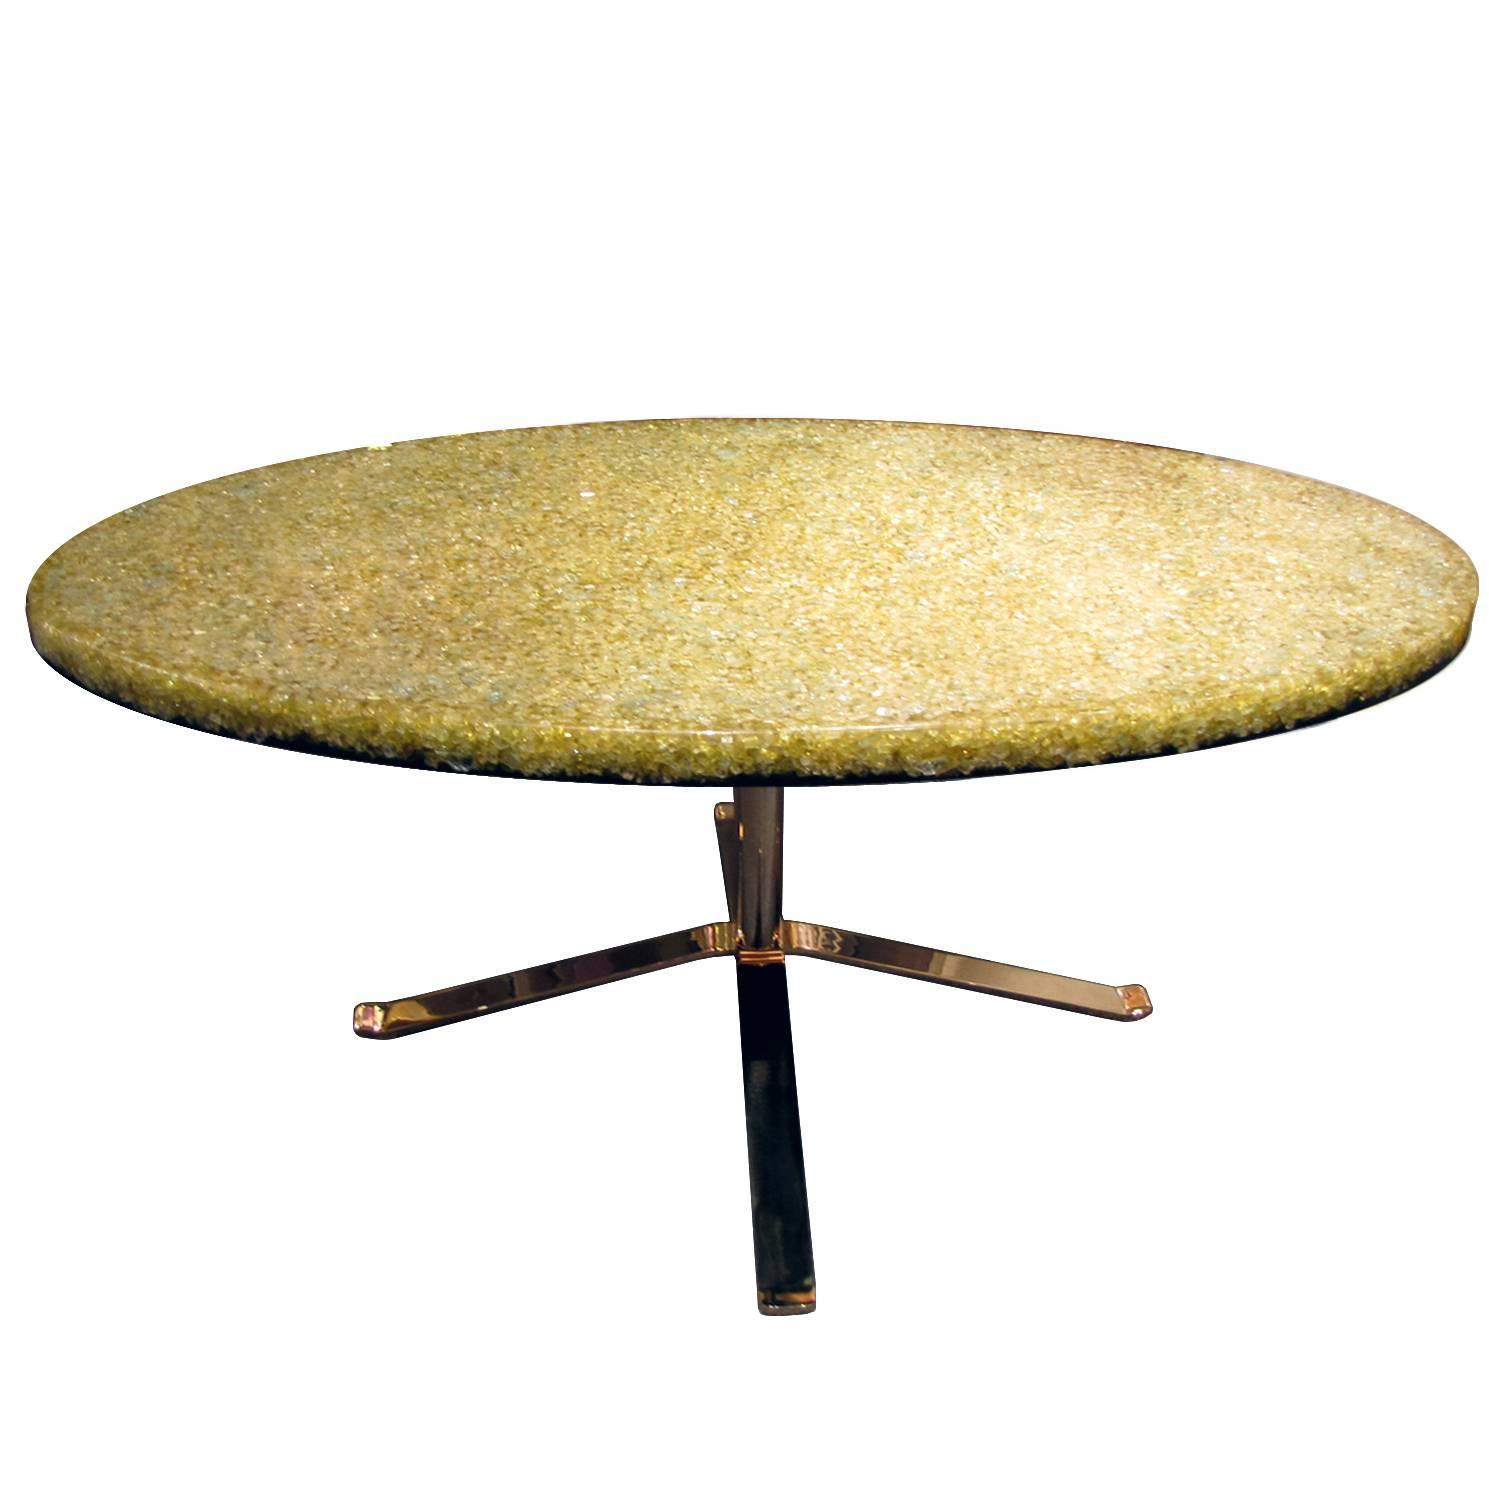 Coffee Table With A Yellow Resin Top On A Gilded Base By Pierre Giraudon 1970 For Sale At 1stdibs